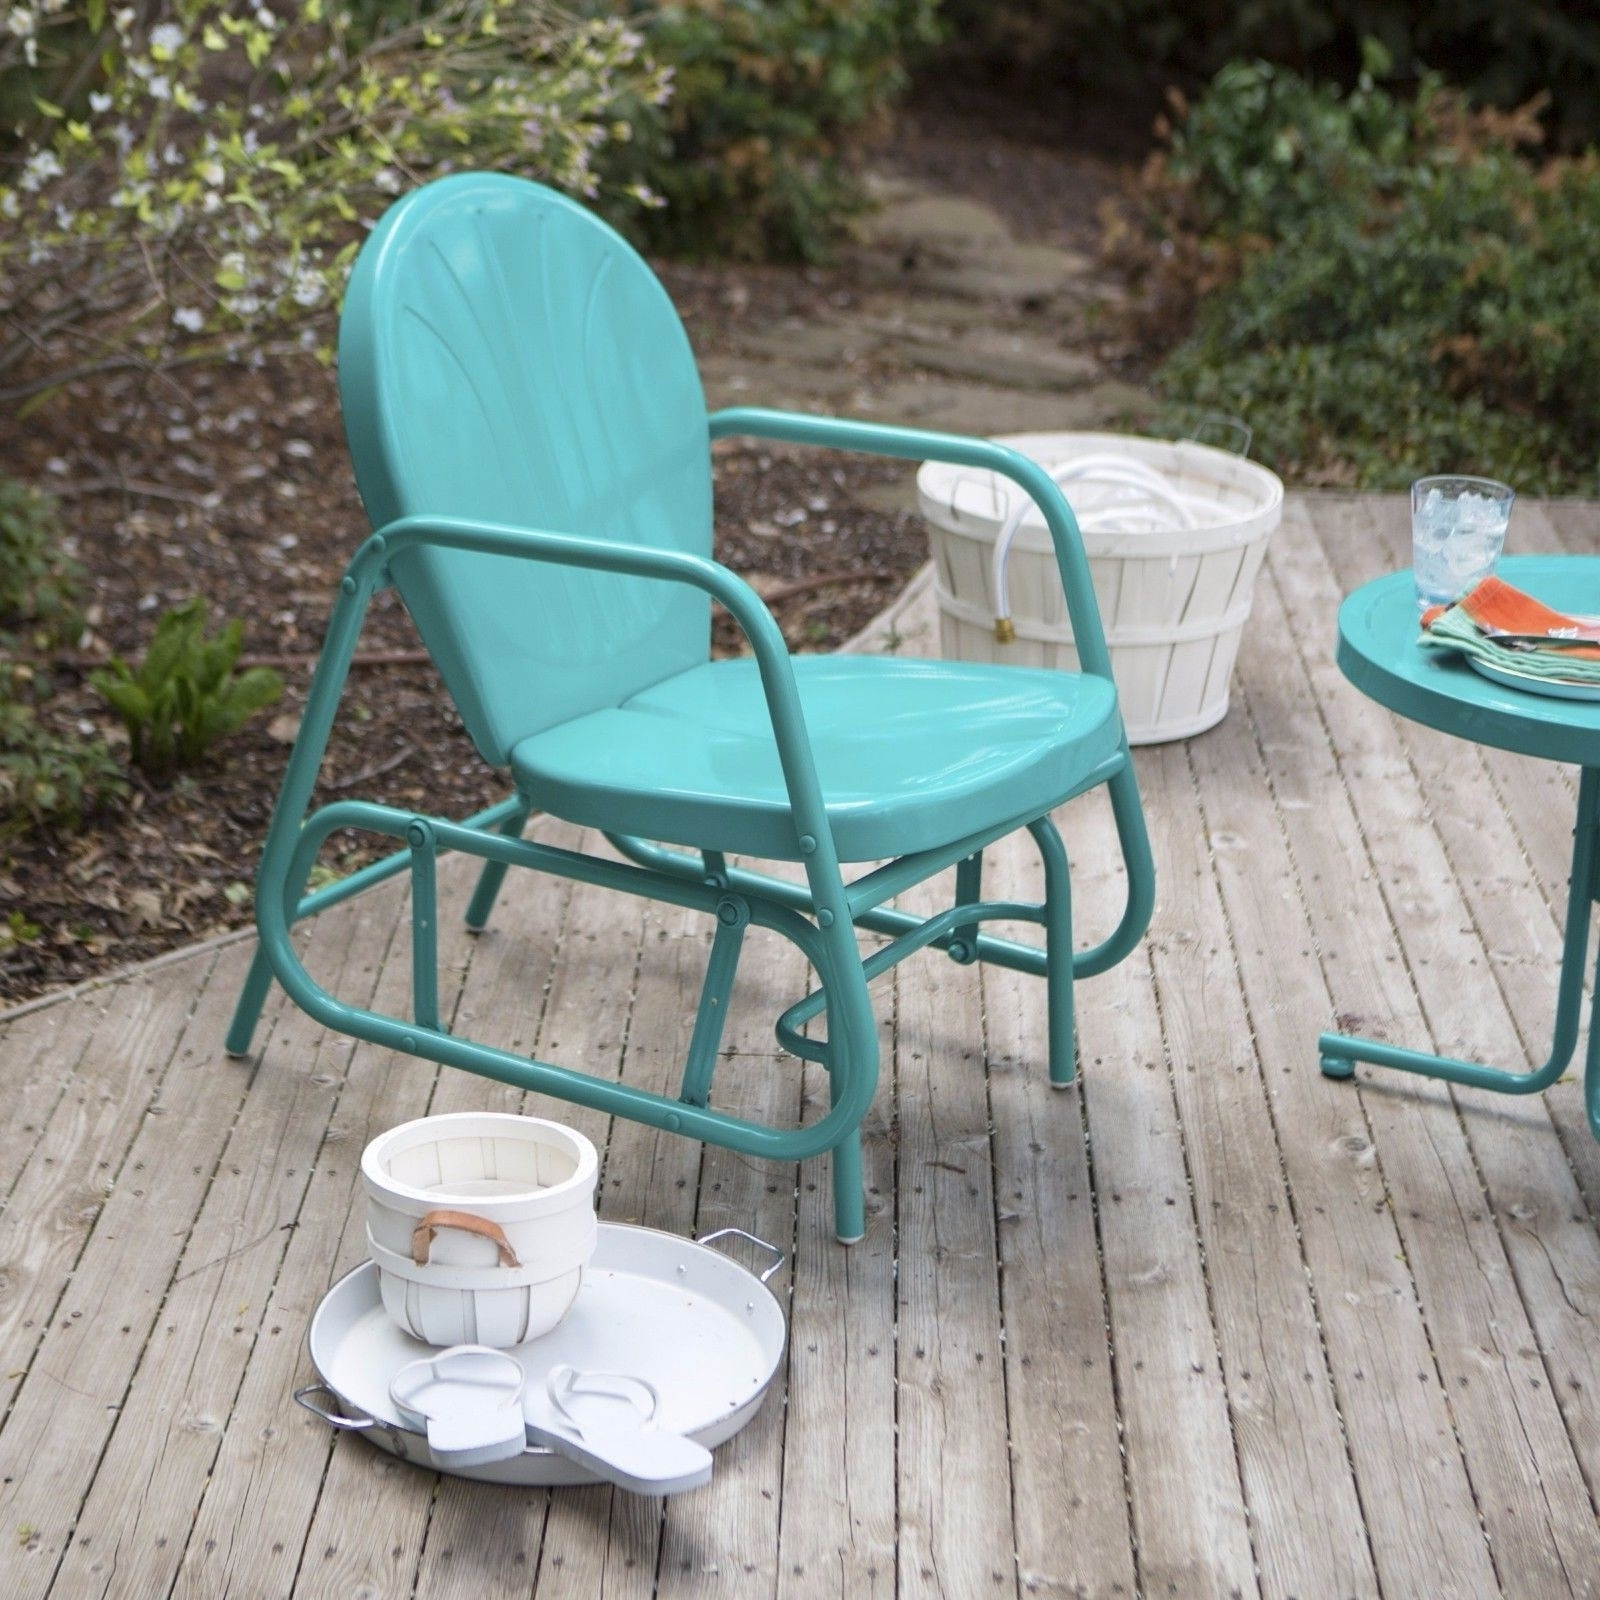 30 Luxury Rocking Chairs Outdoor Images (30 Photos) (View 10 of 20)